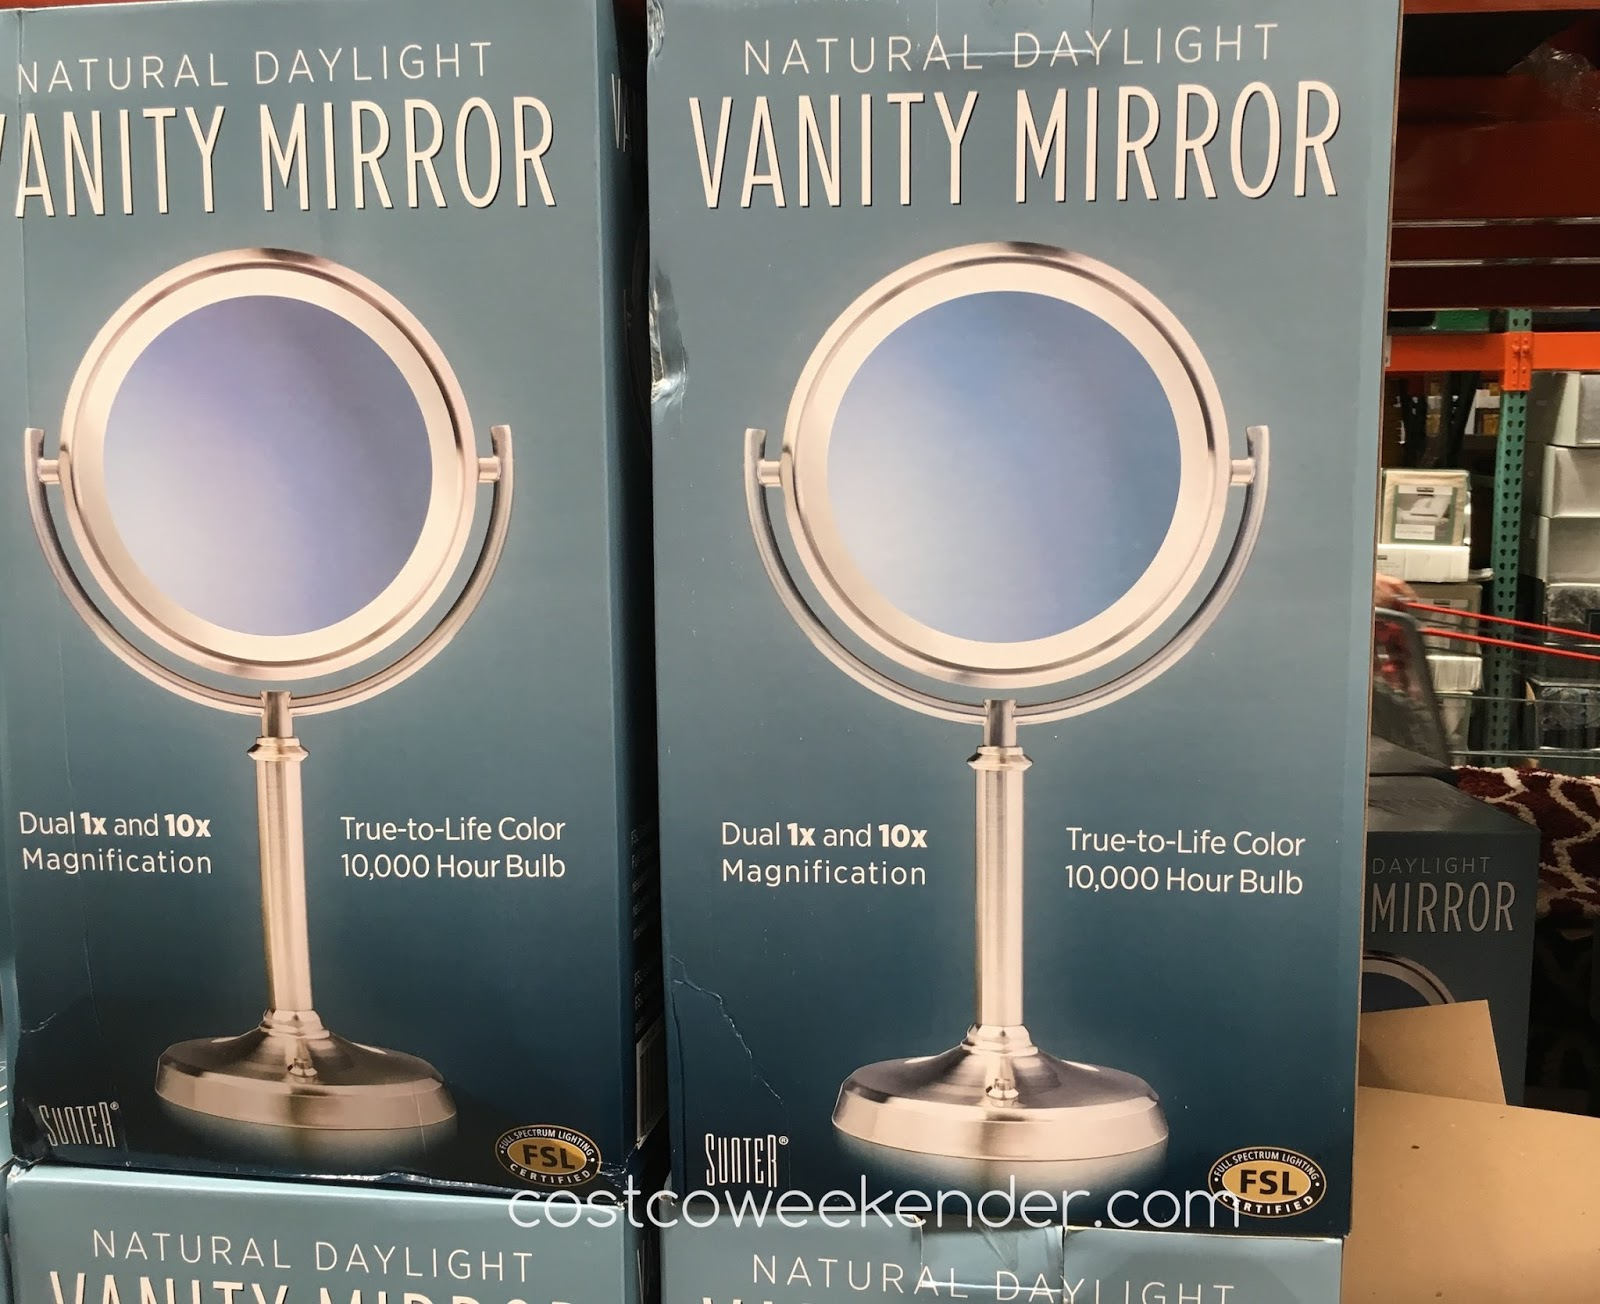 Sunter Natural Daylight Vanity Mirror Costco Weekender